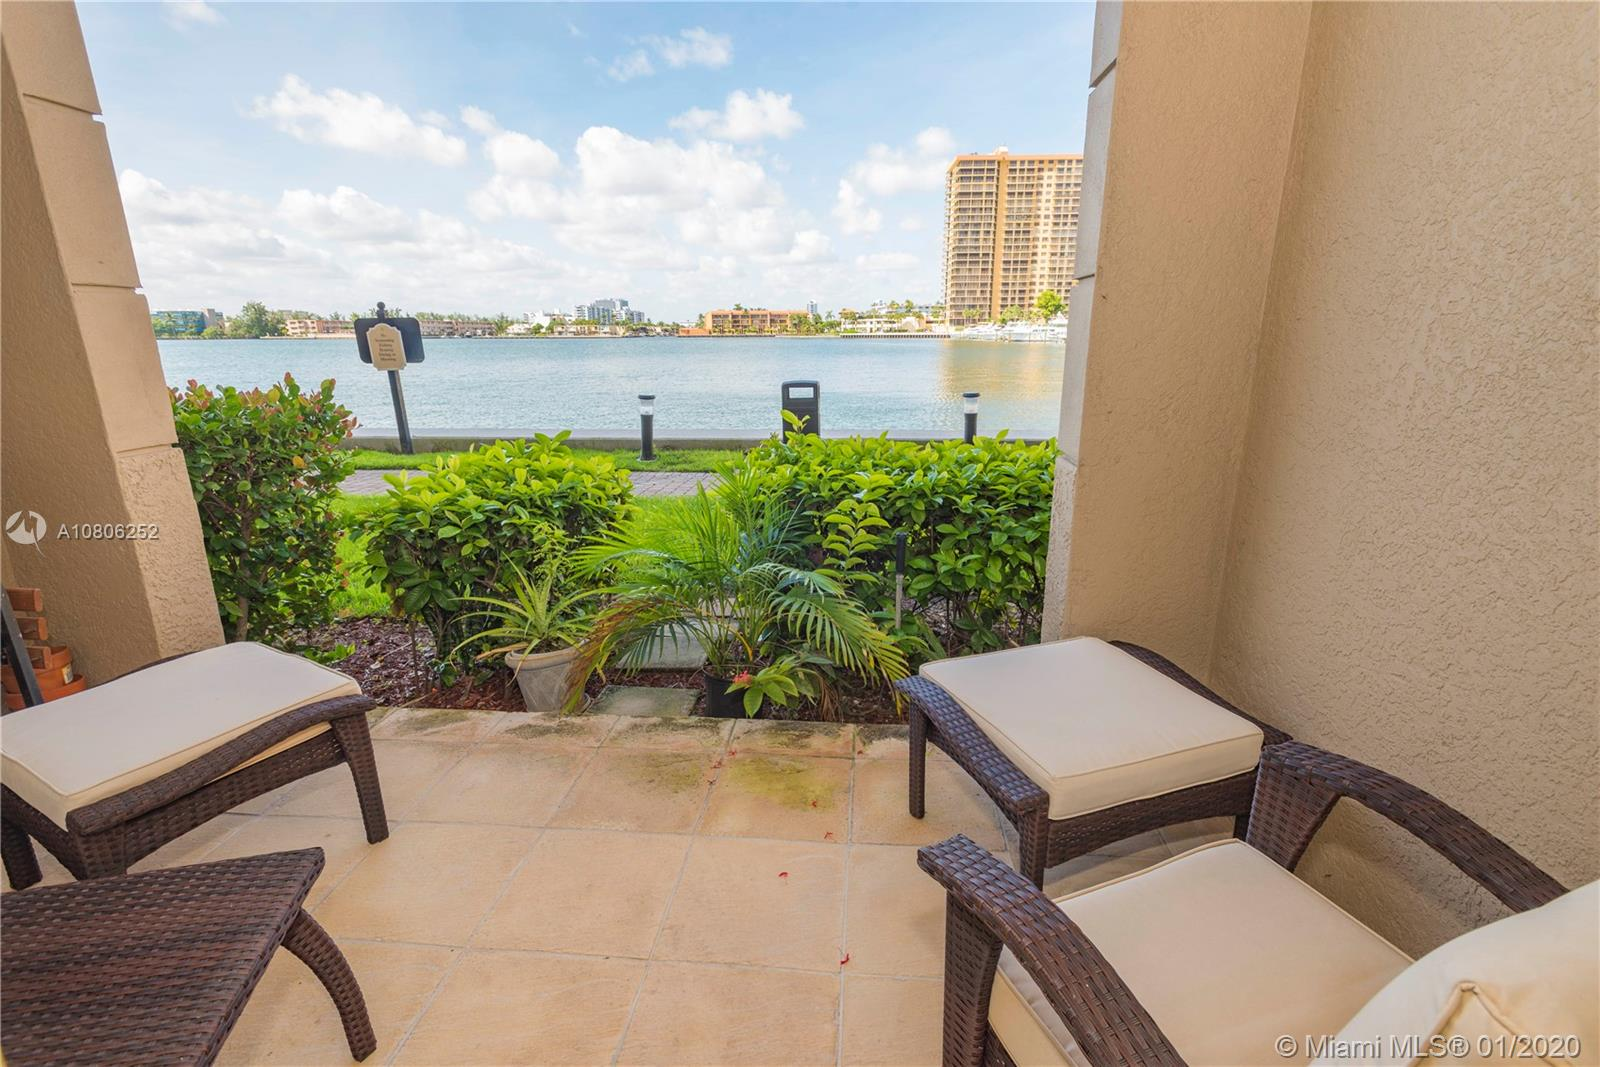 17150 N Bay Rd #2107 For Sale A10806252, FL